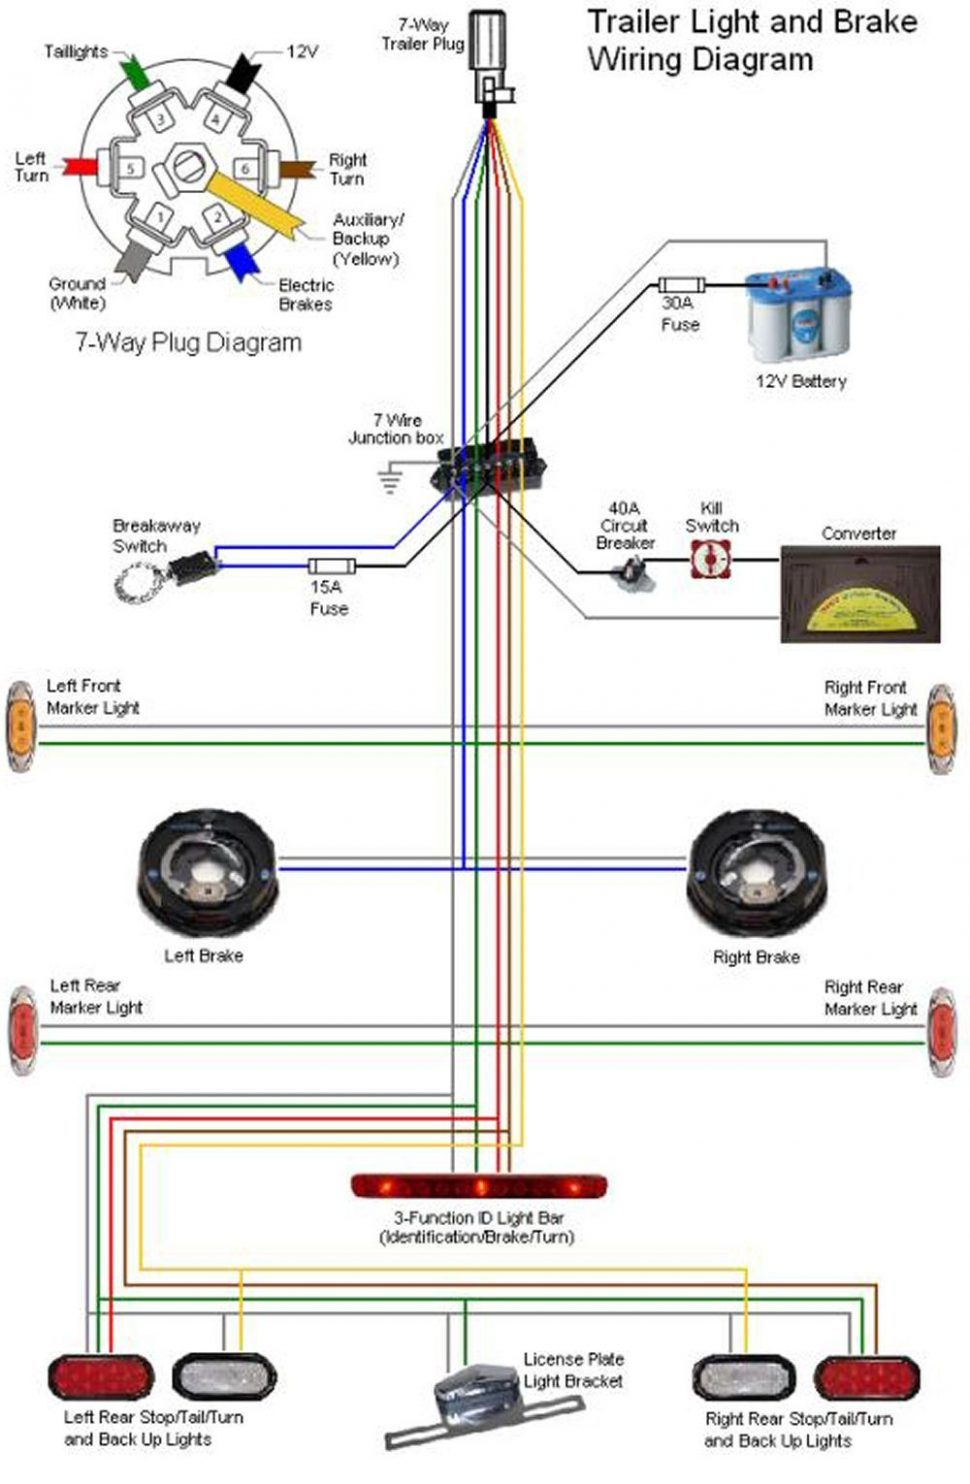 Seven Pin Trailer Wiring Diagram | Wiring Diagrams Gallery - Seven Prong Trailer Wiring Diagram